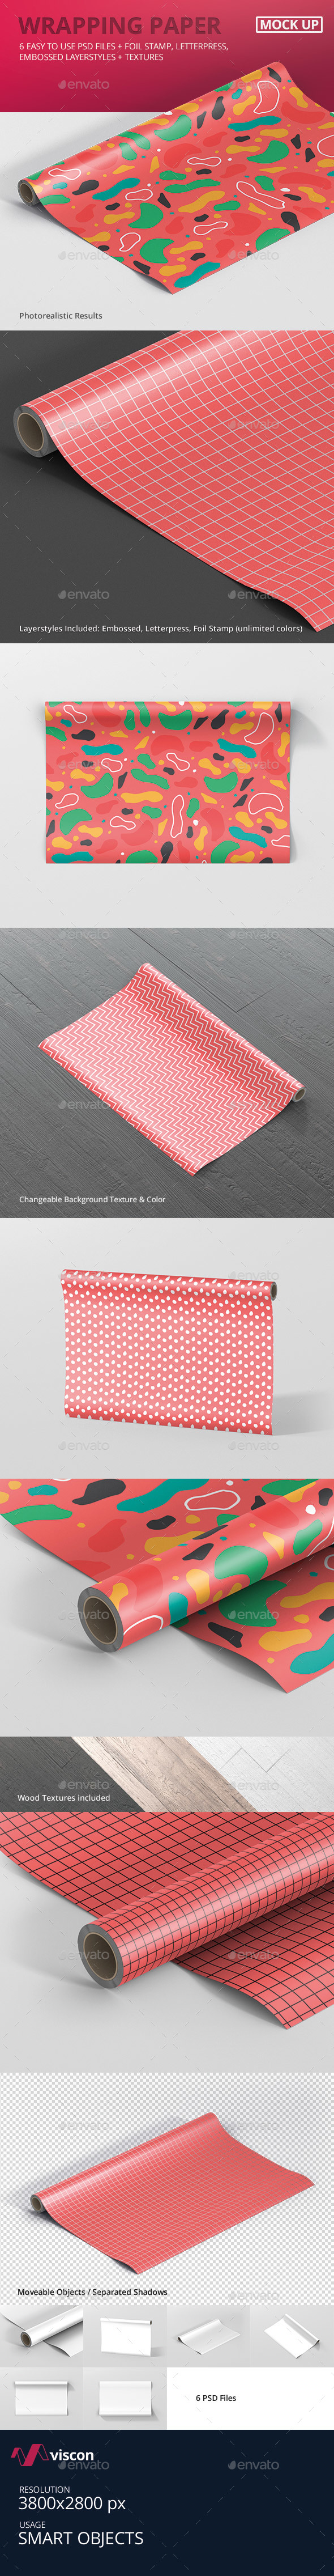 GraphicRiver Gift Wrapping Paper Mockup 21115653